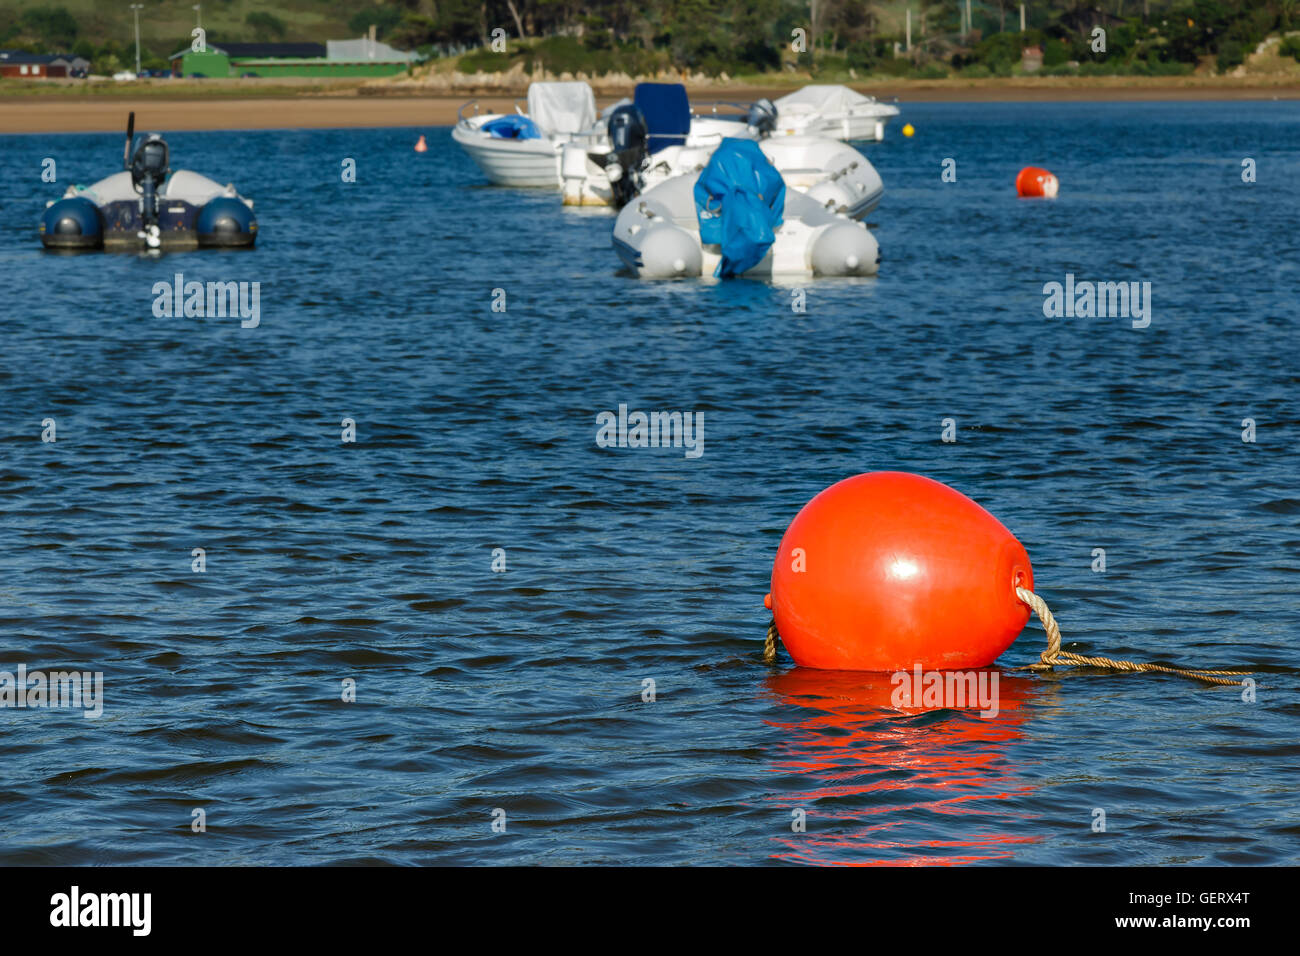 Red buoy on a beach in Cantabria, Spain. Horizontal image. Stock Photo